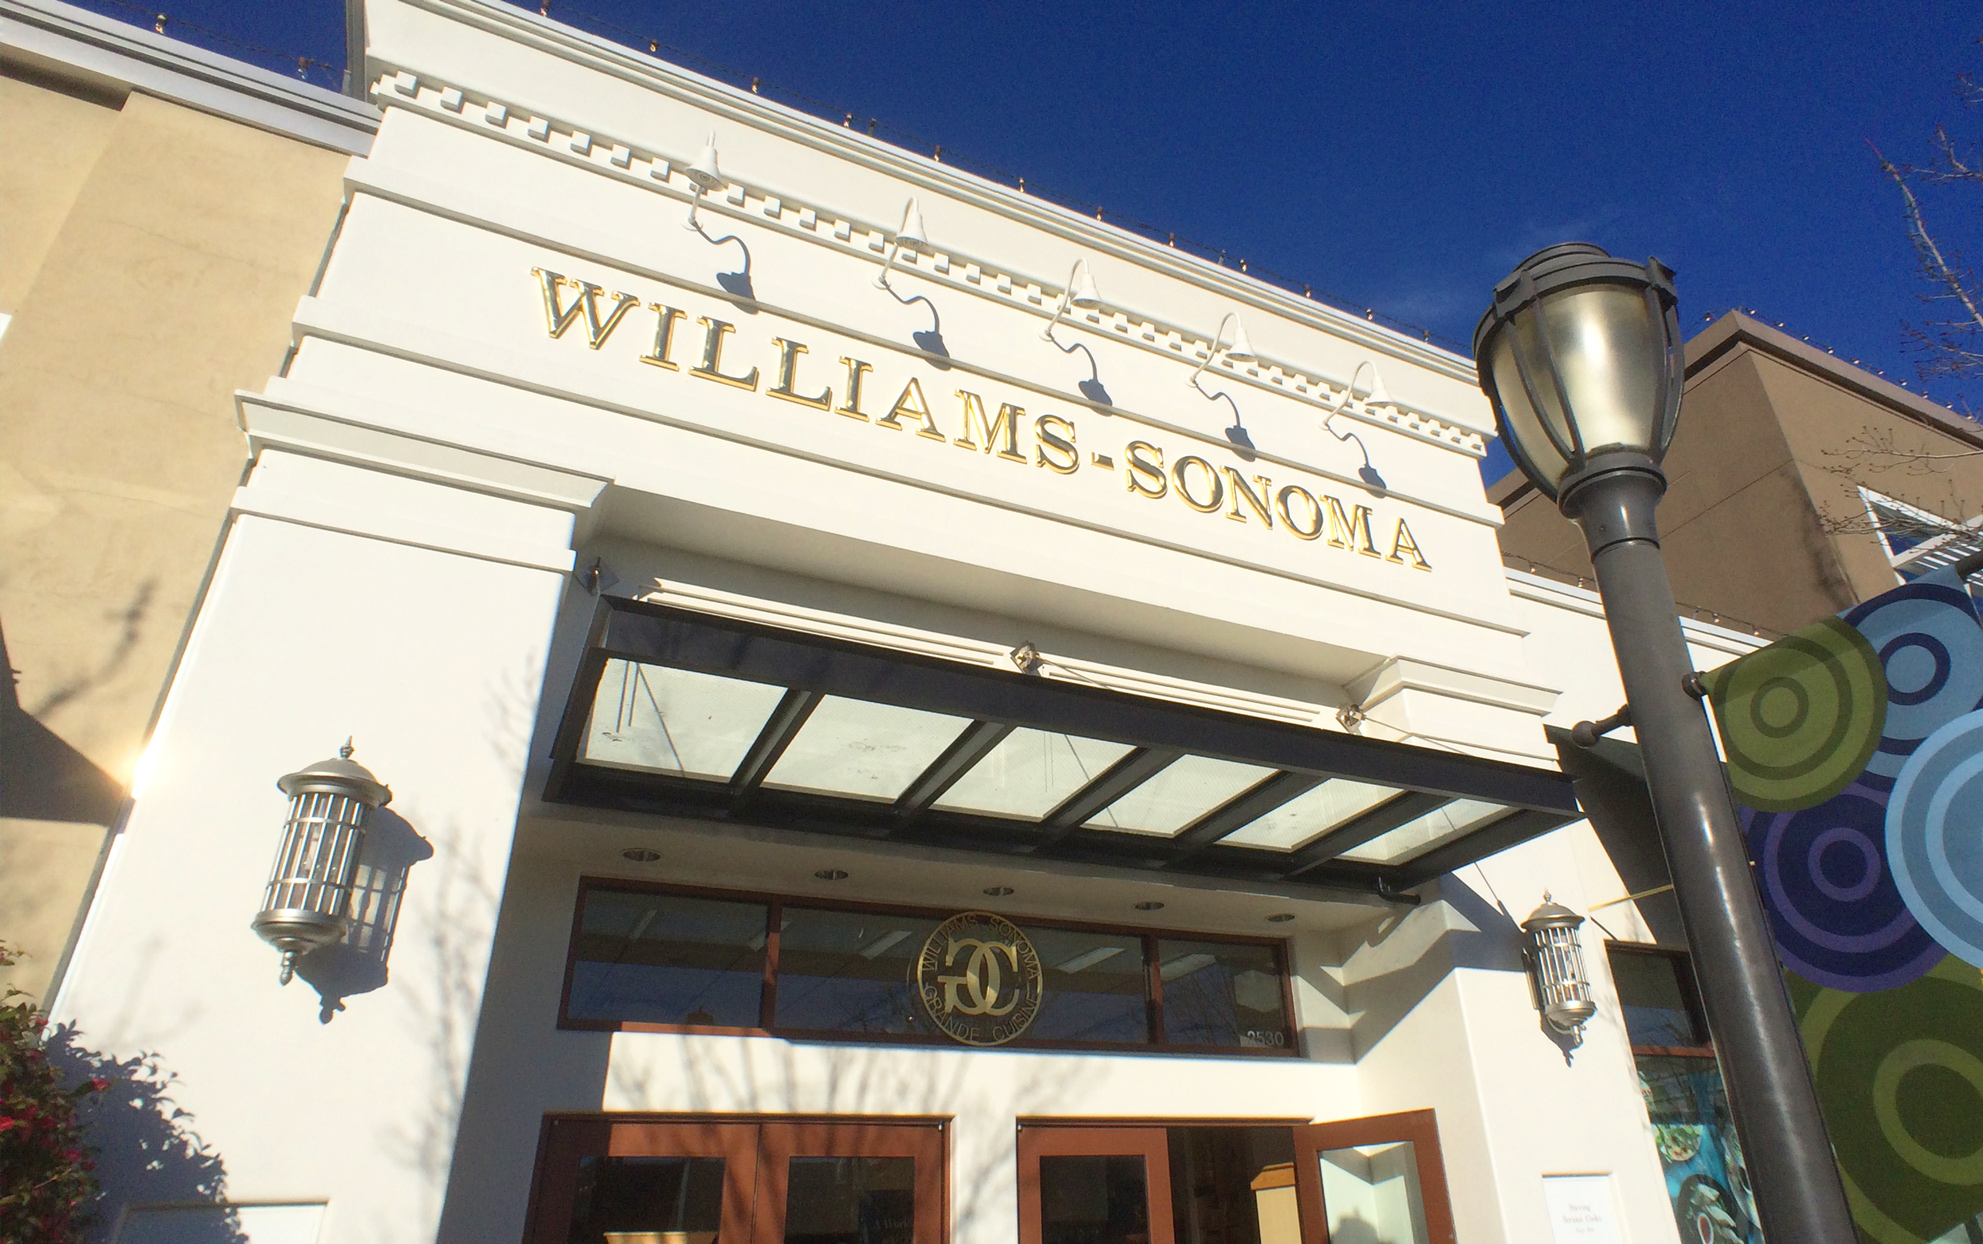 William Sonoma storefront